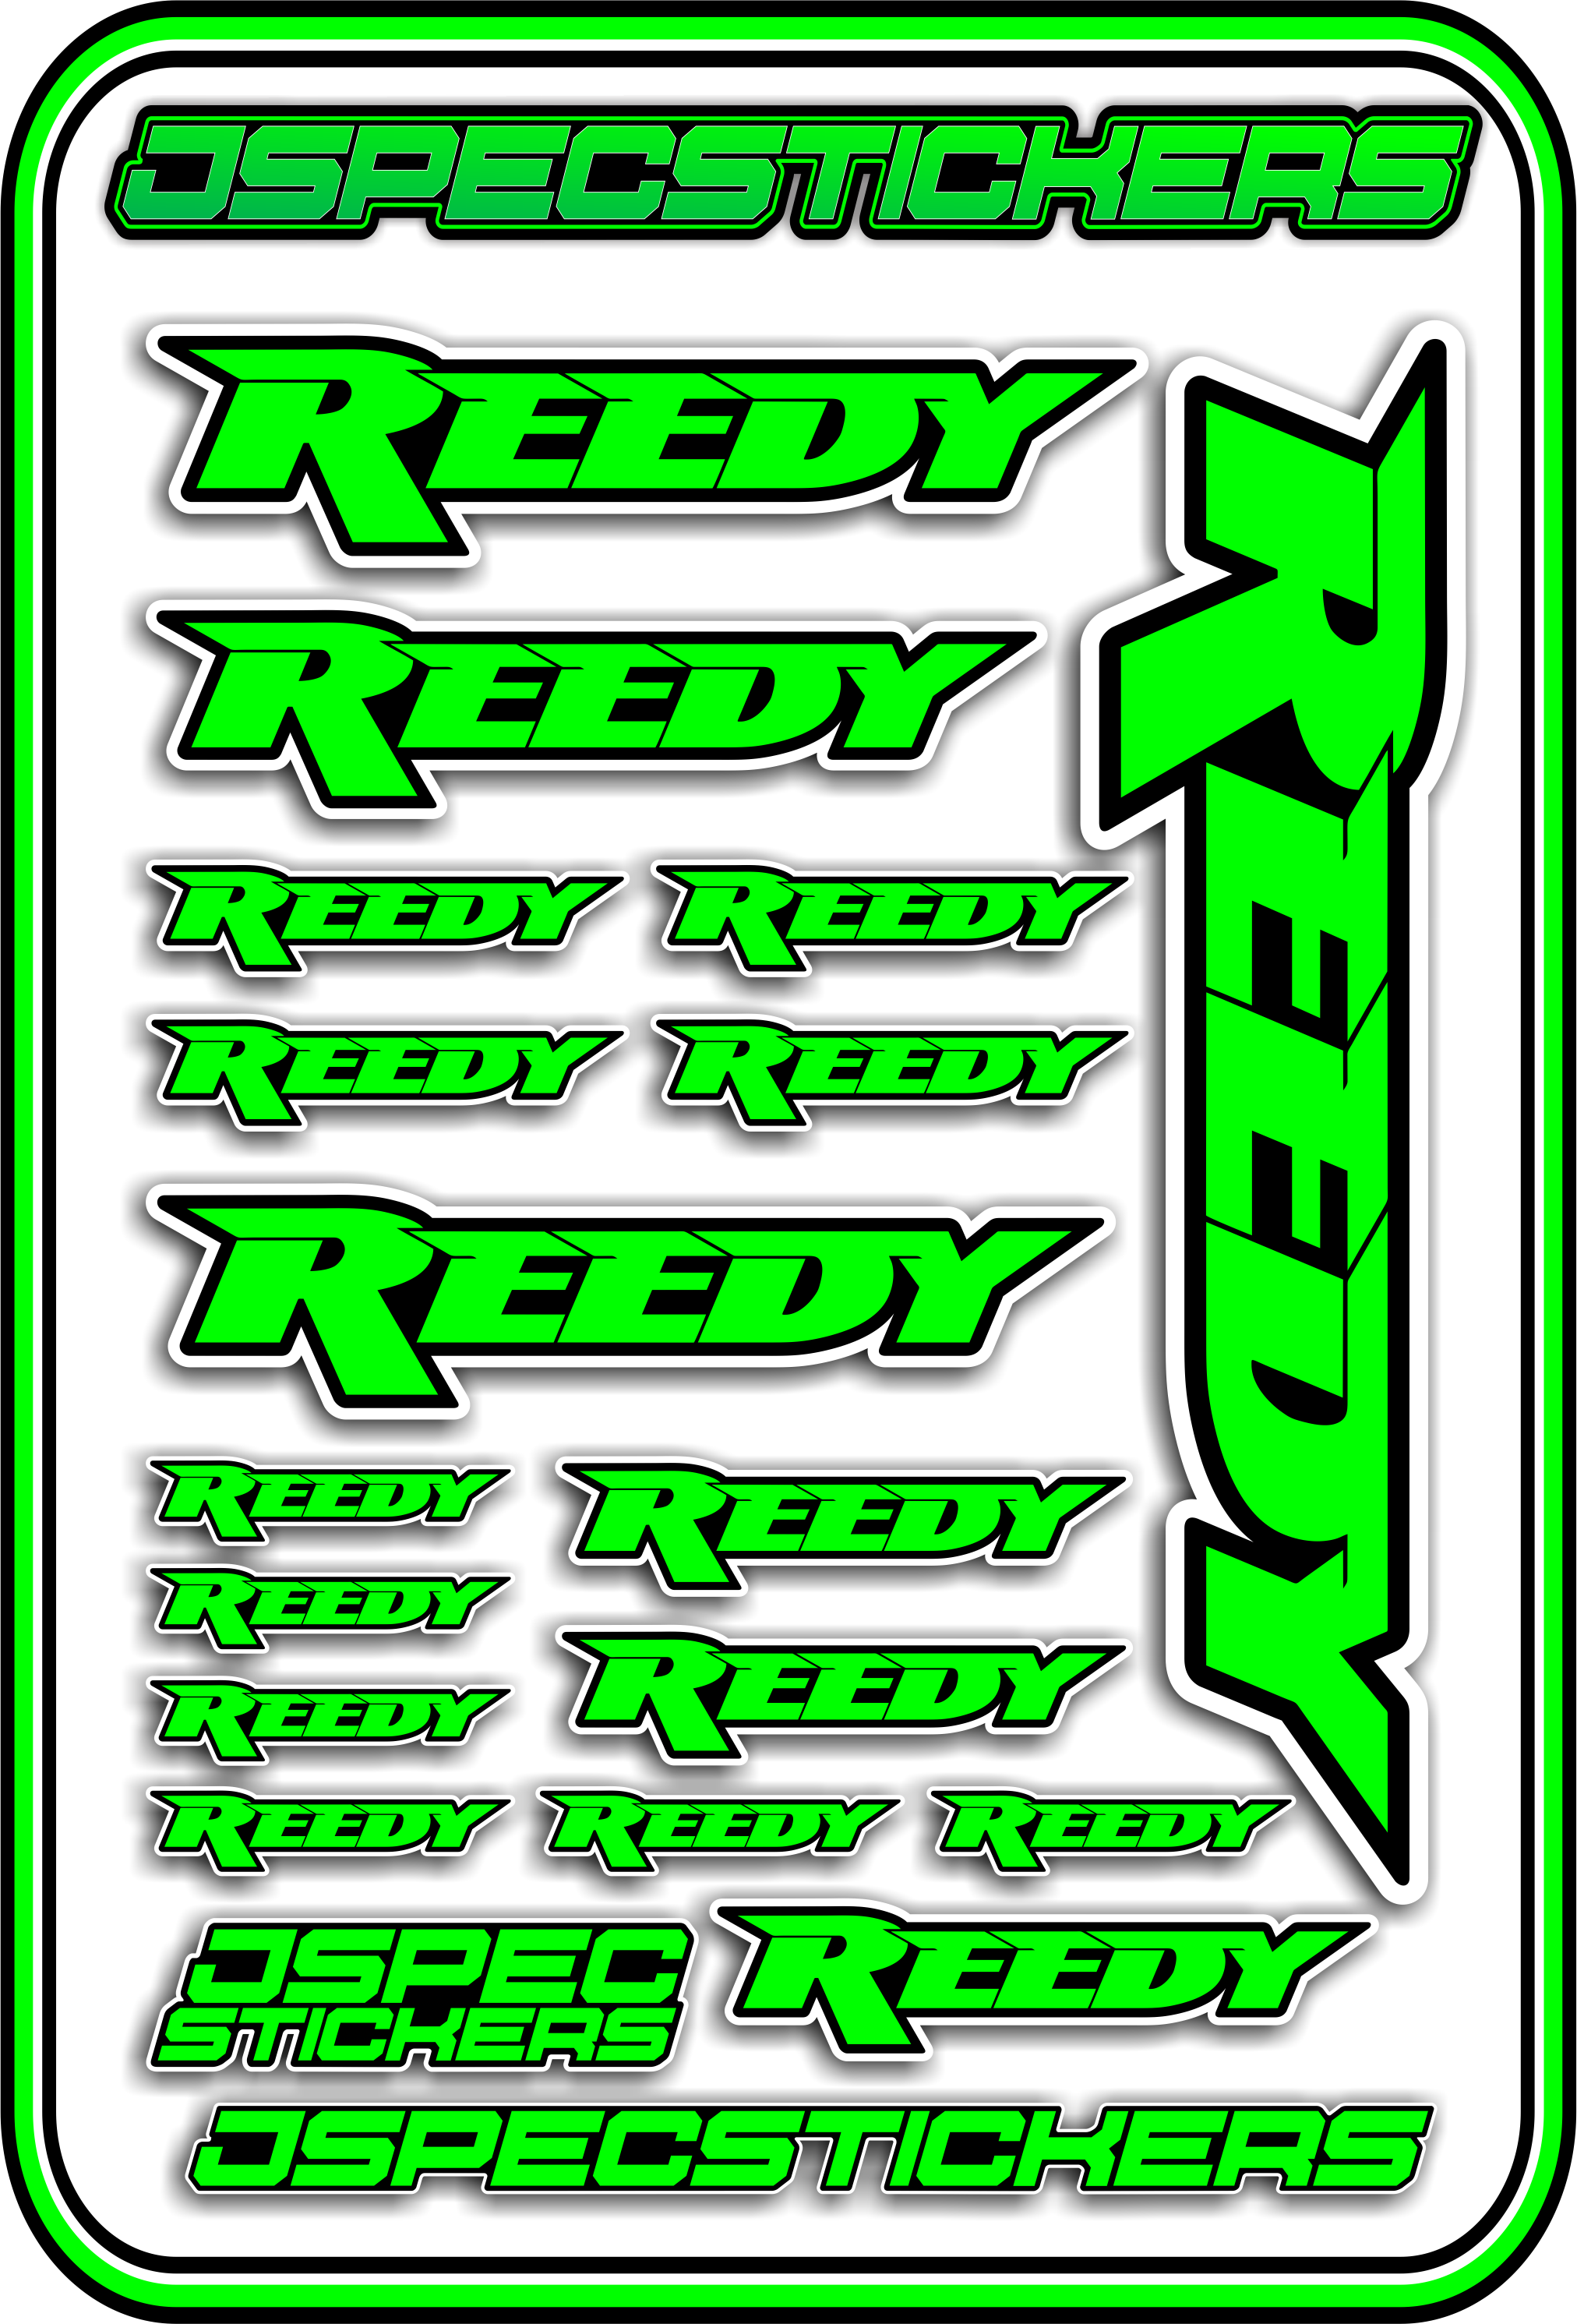 REEDY RC STICKER SHEET A5 - Jspec Stickers